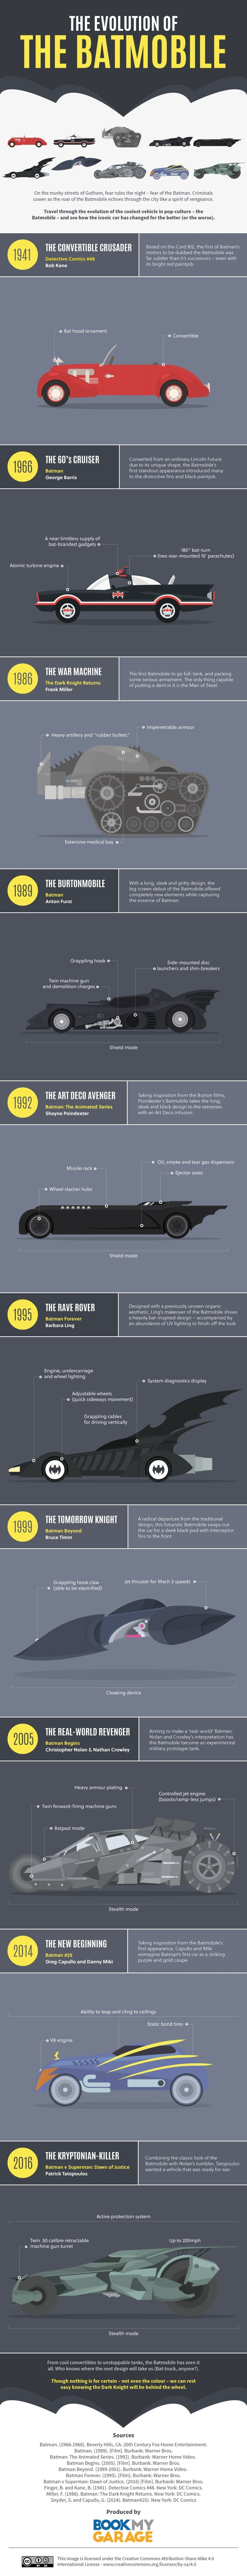 superheroes-batman-dc-infographic-batmobile